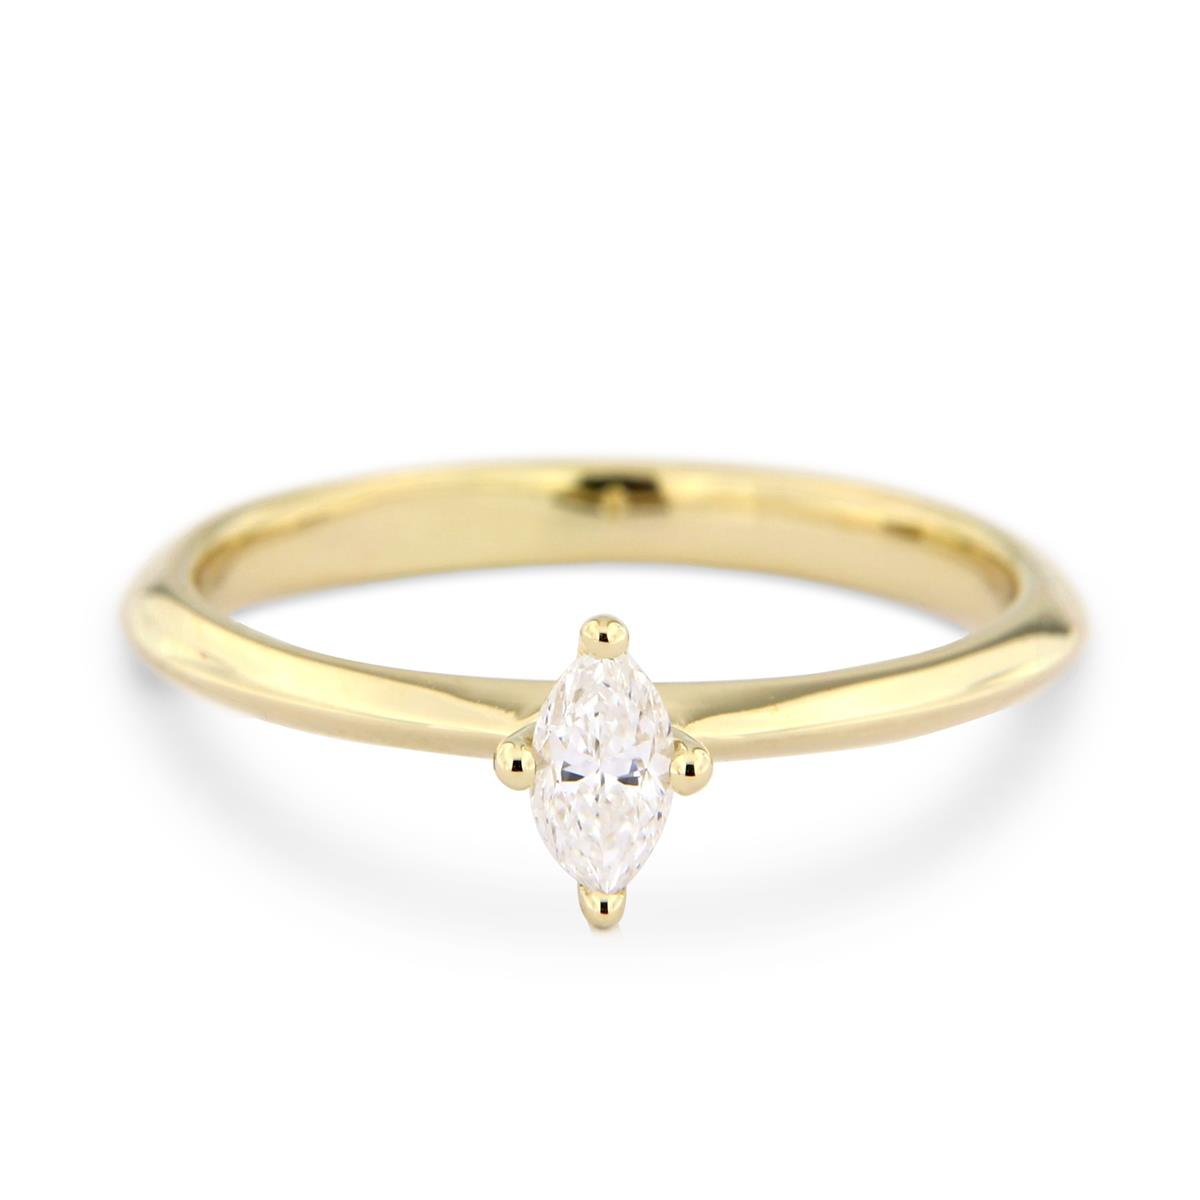 Katie g. Jewellery - Navette Diamond Solitaire Ring_EUR 3.150